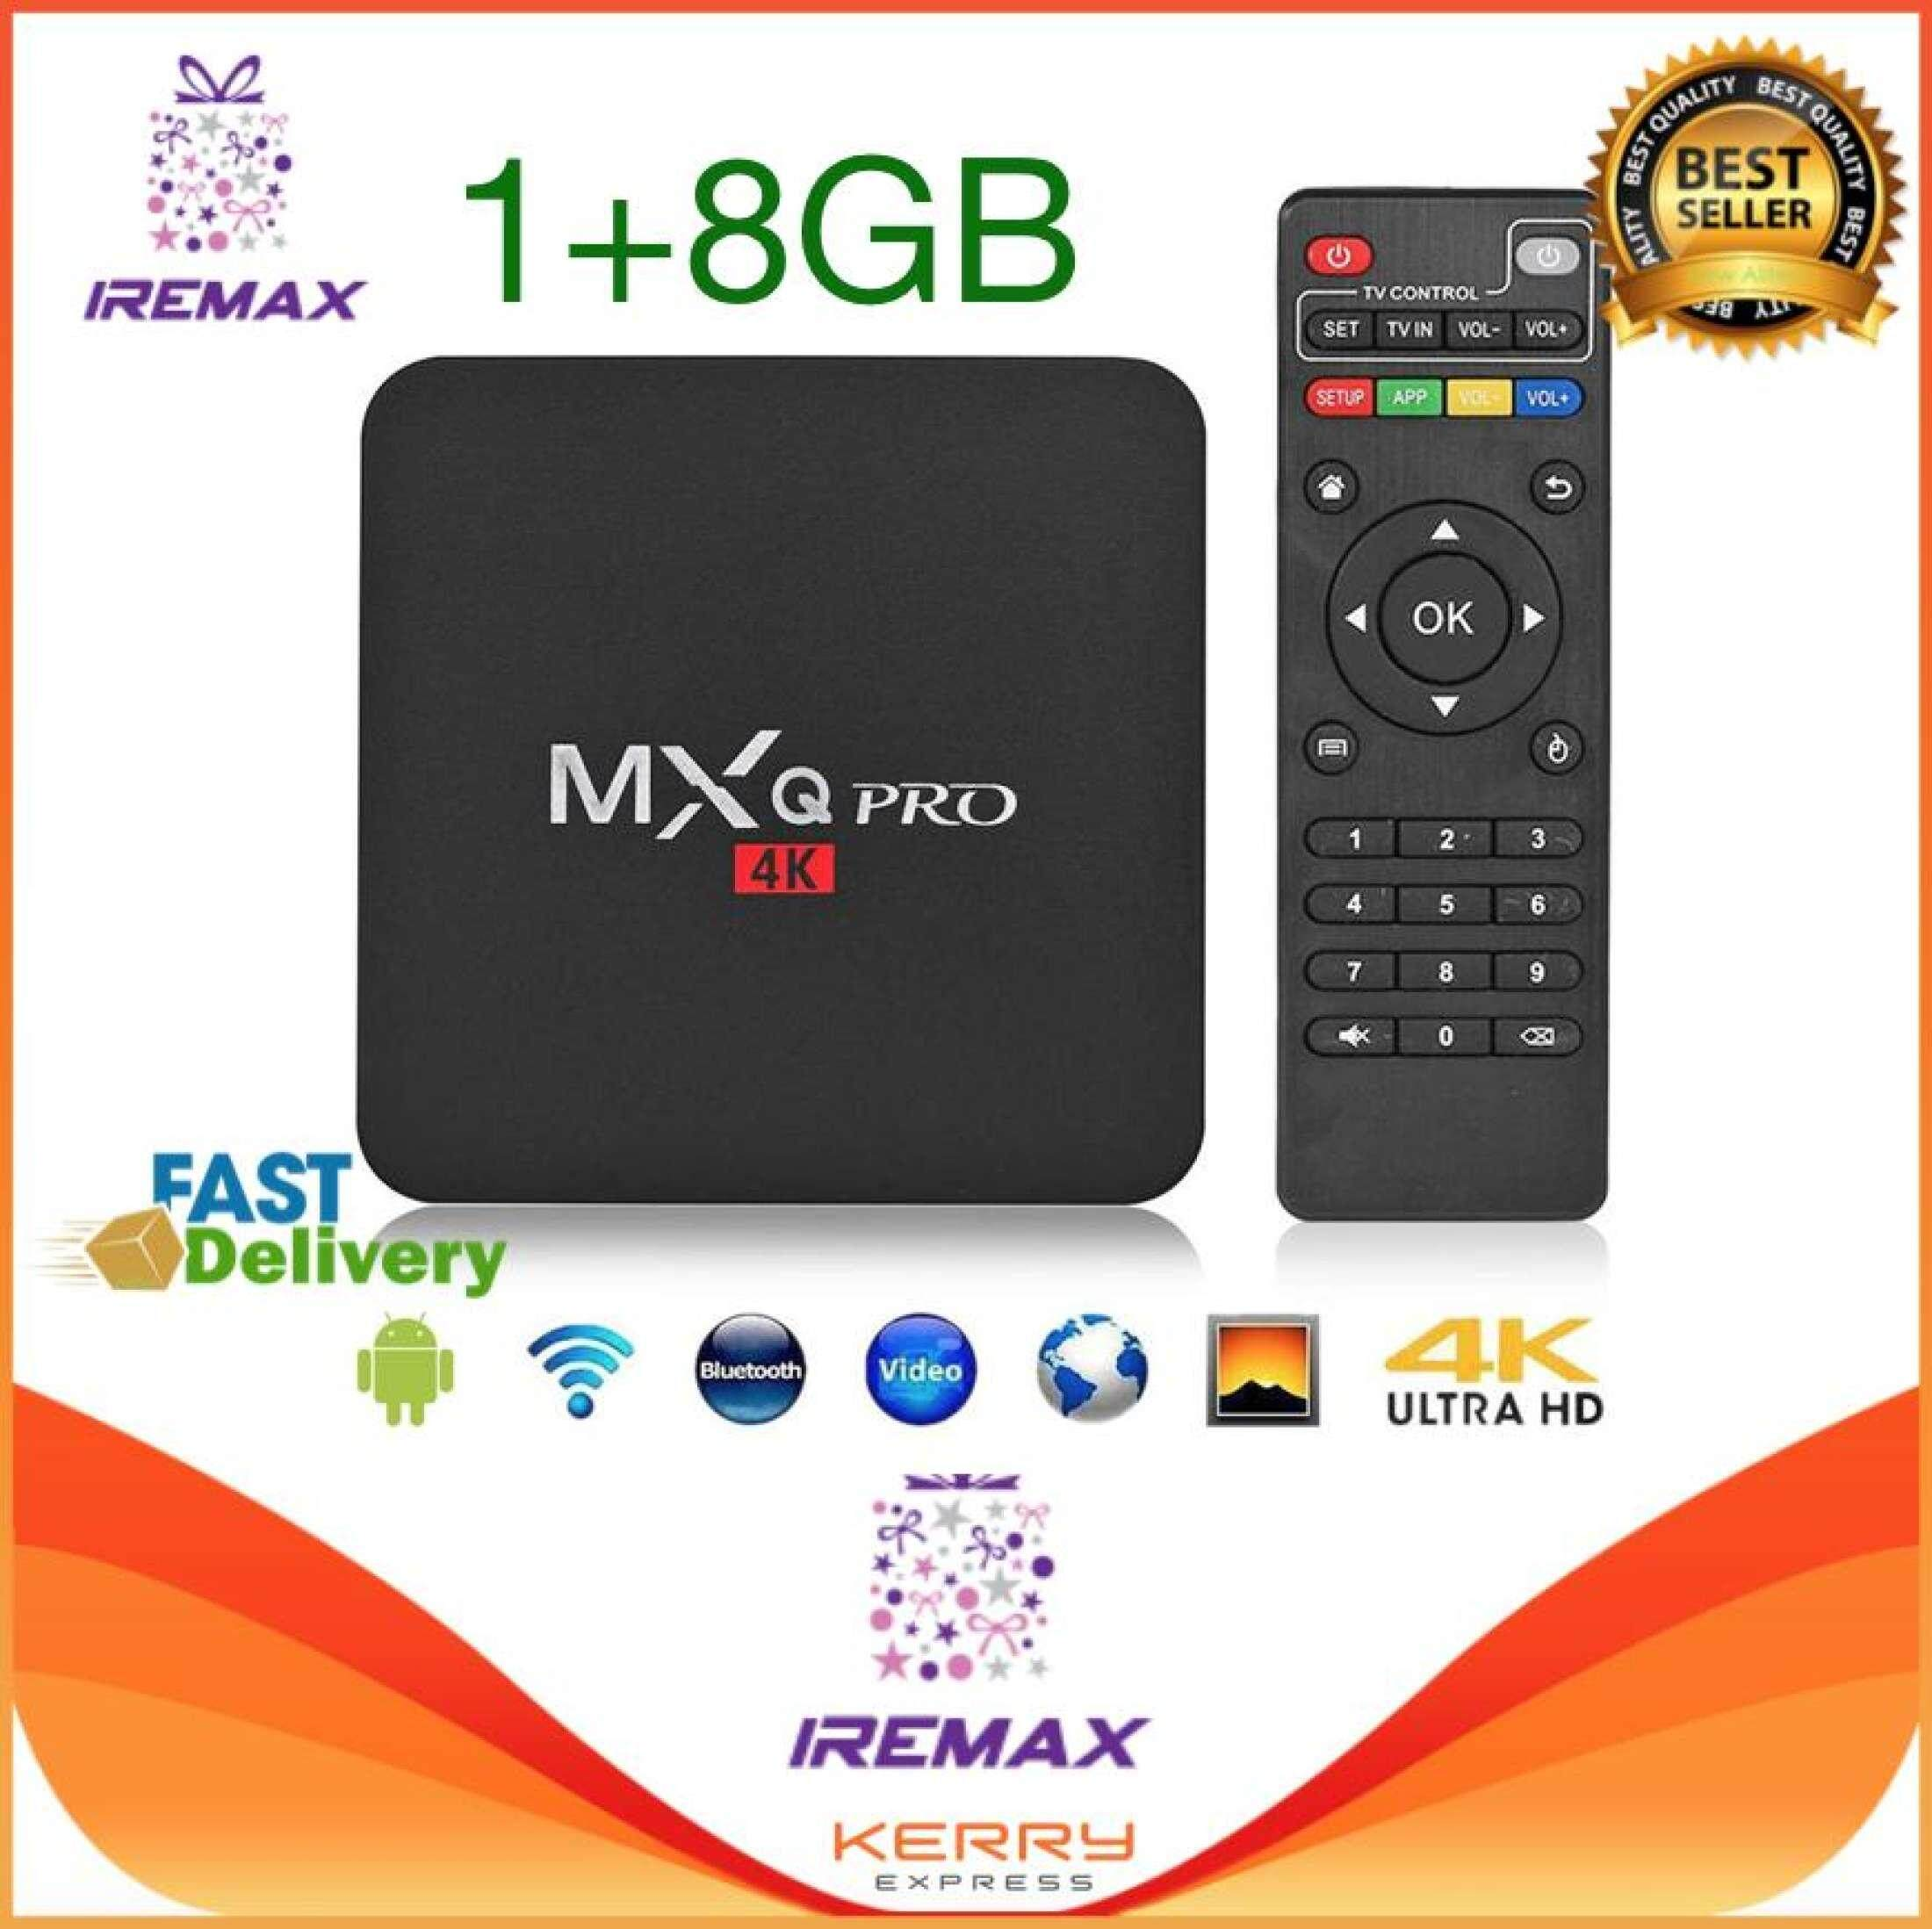 ยี่ห้อนี้ดีไหม  ศรีสะเกษ iRemax Hot 2019 MXQ PRO Quad Core Android 7.1 Smart TV Box 1+8GB HDMI WIFI 4K Media Streamer